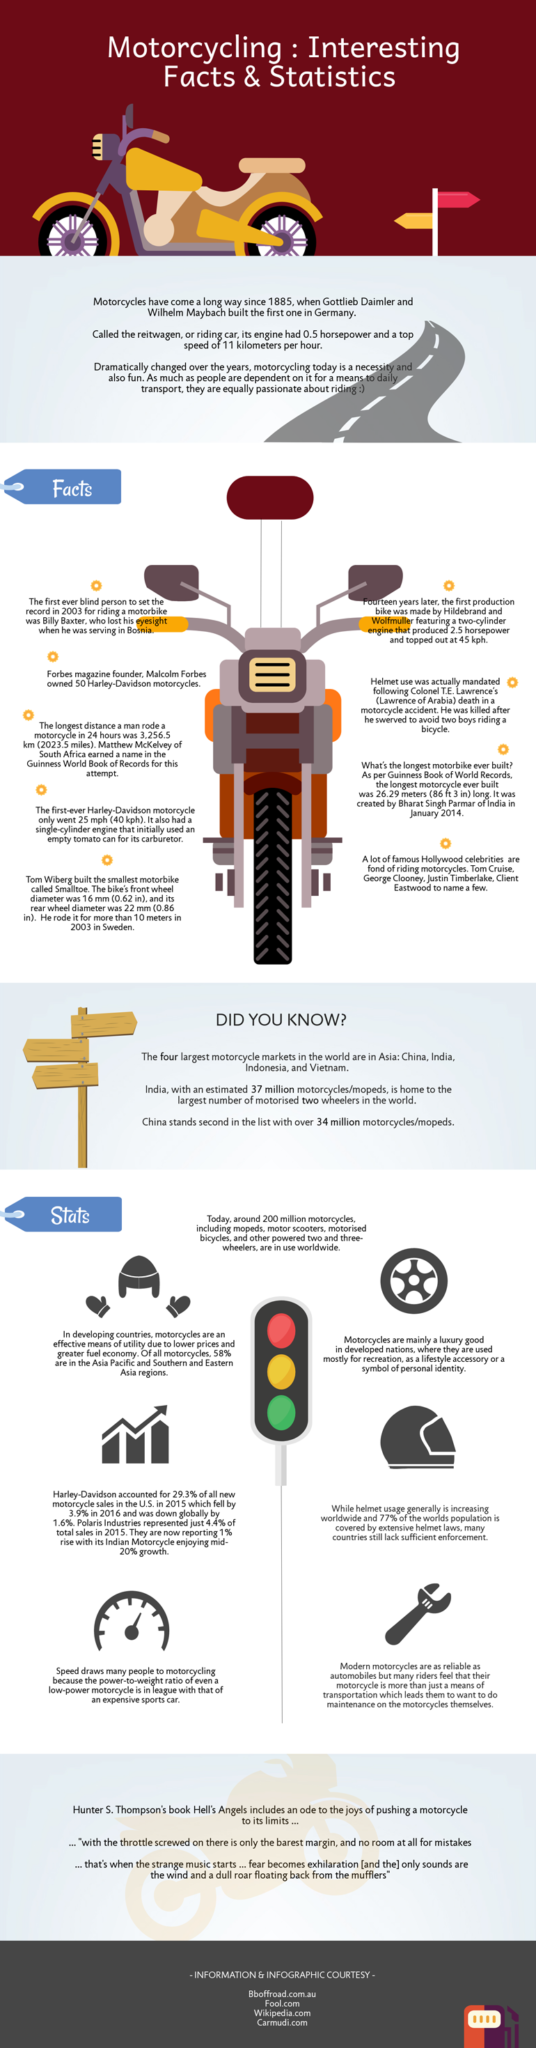 interesting facts about motor cycle